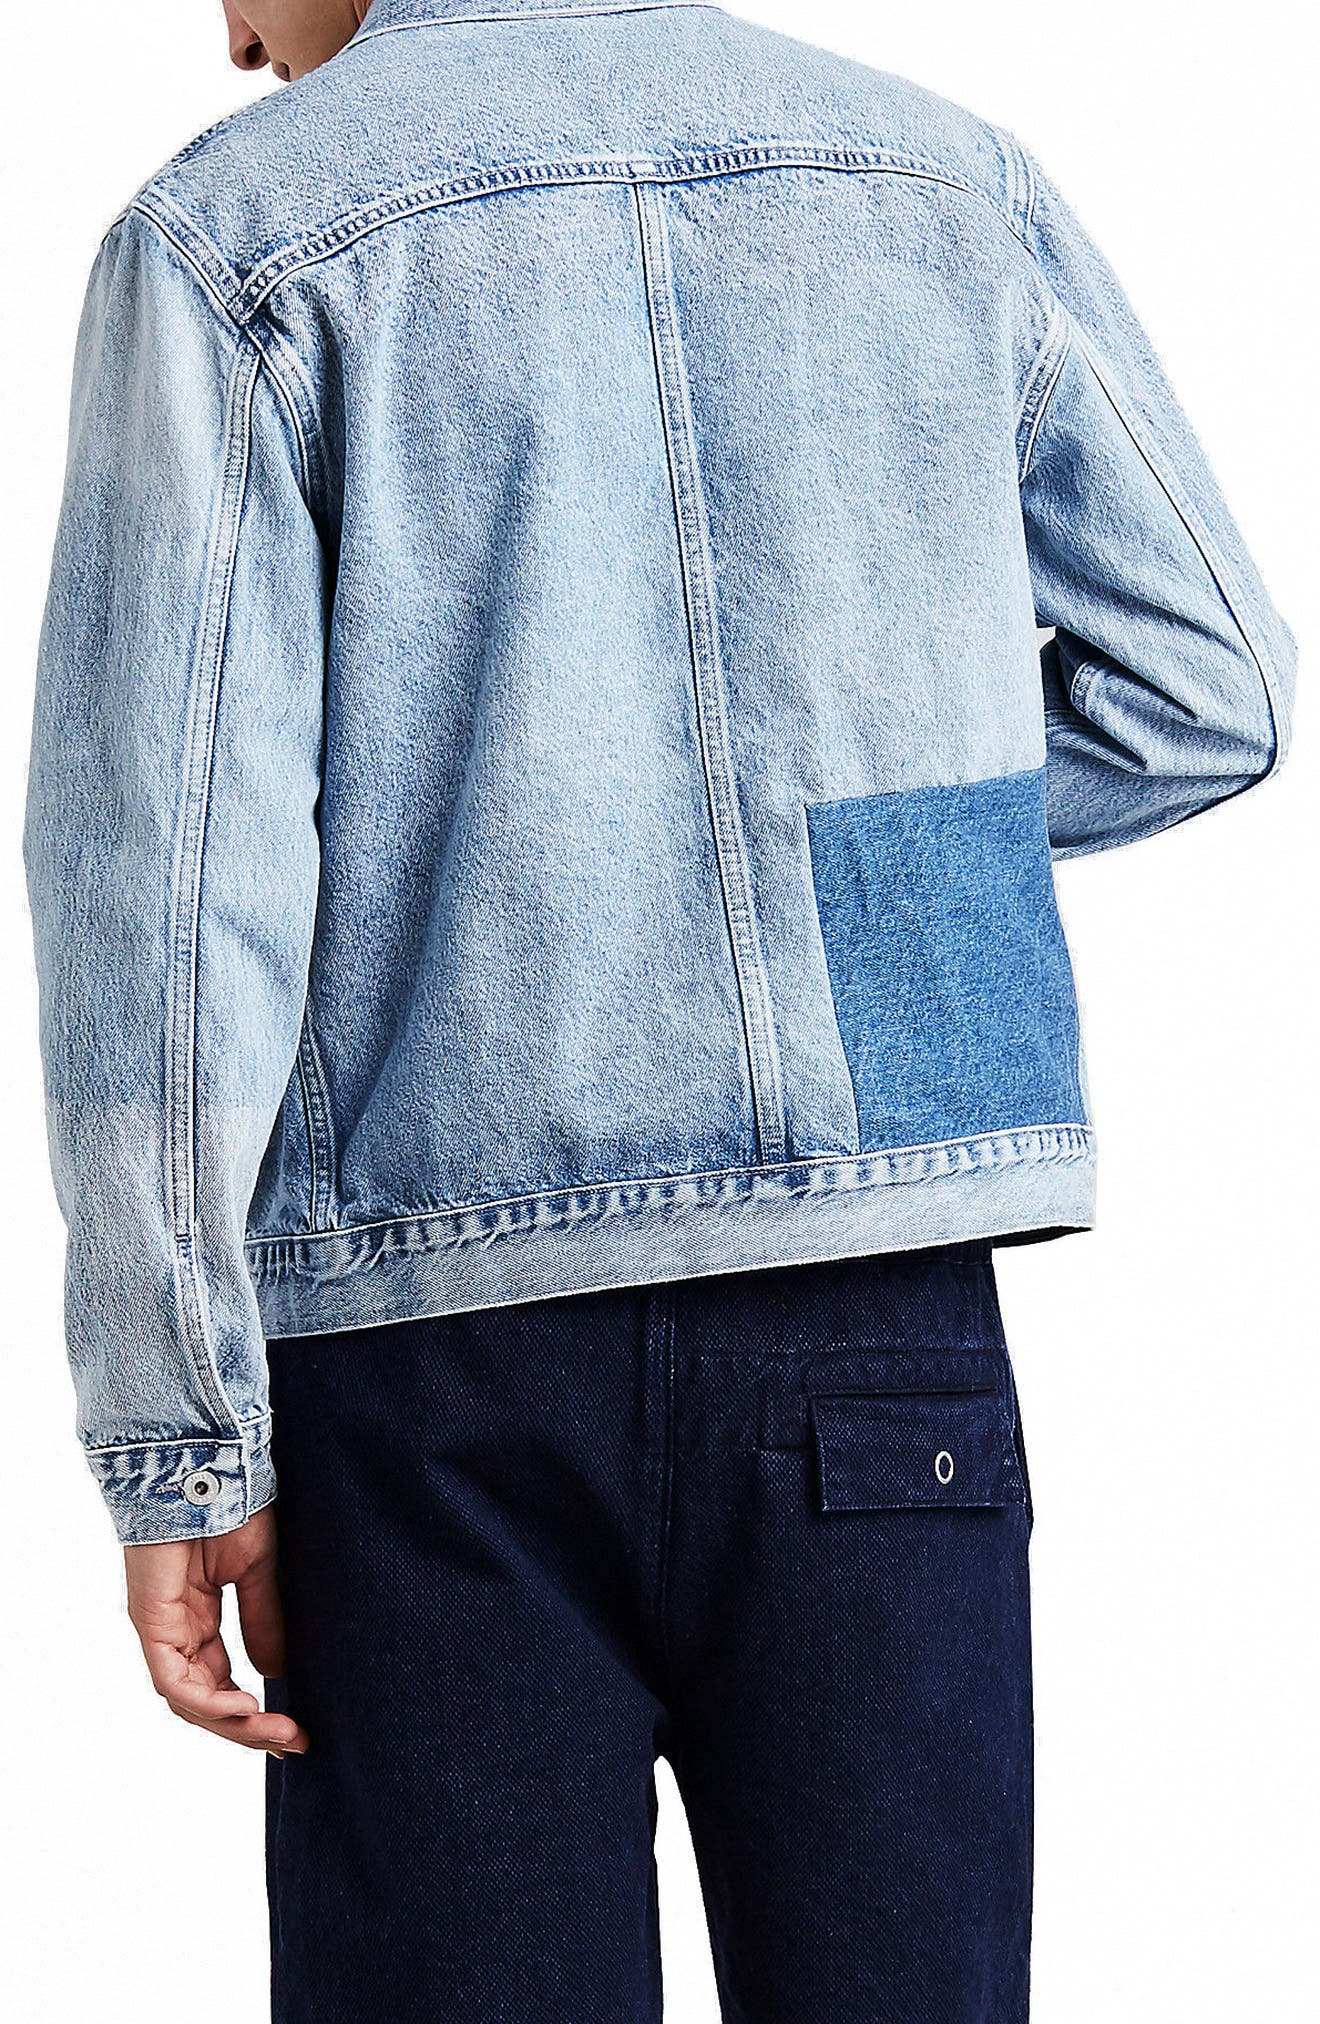 LEVI'S<SUP>®</SUP> MADE & CRAFTED<SUP>™</SUP>,                             Type IV Trucker Standard Fit Denim Jacket,                             Alternate thumbnail 2, color,                             420